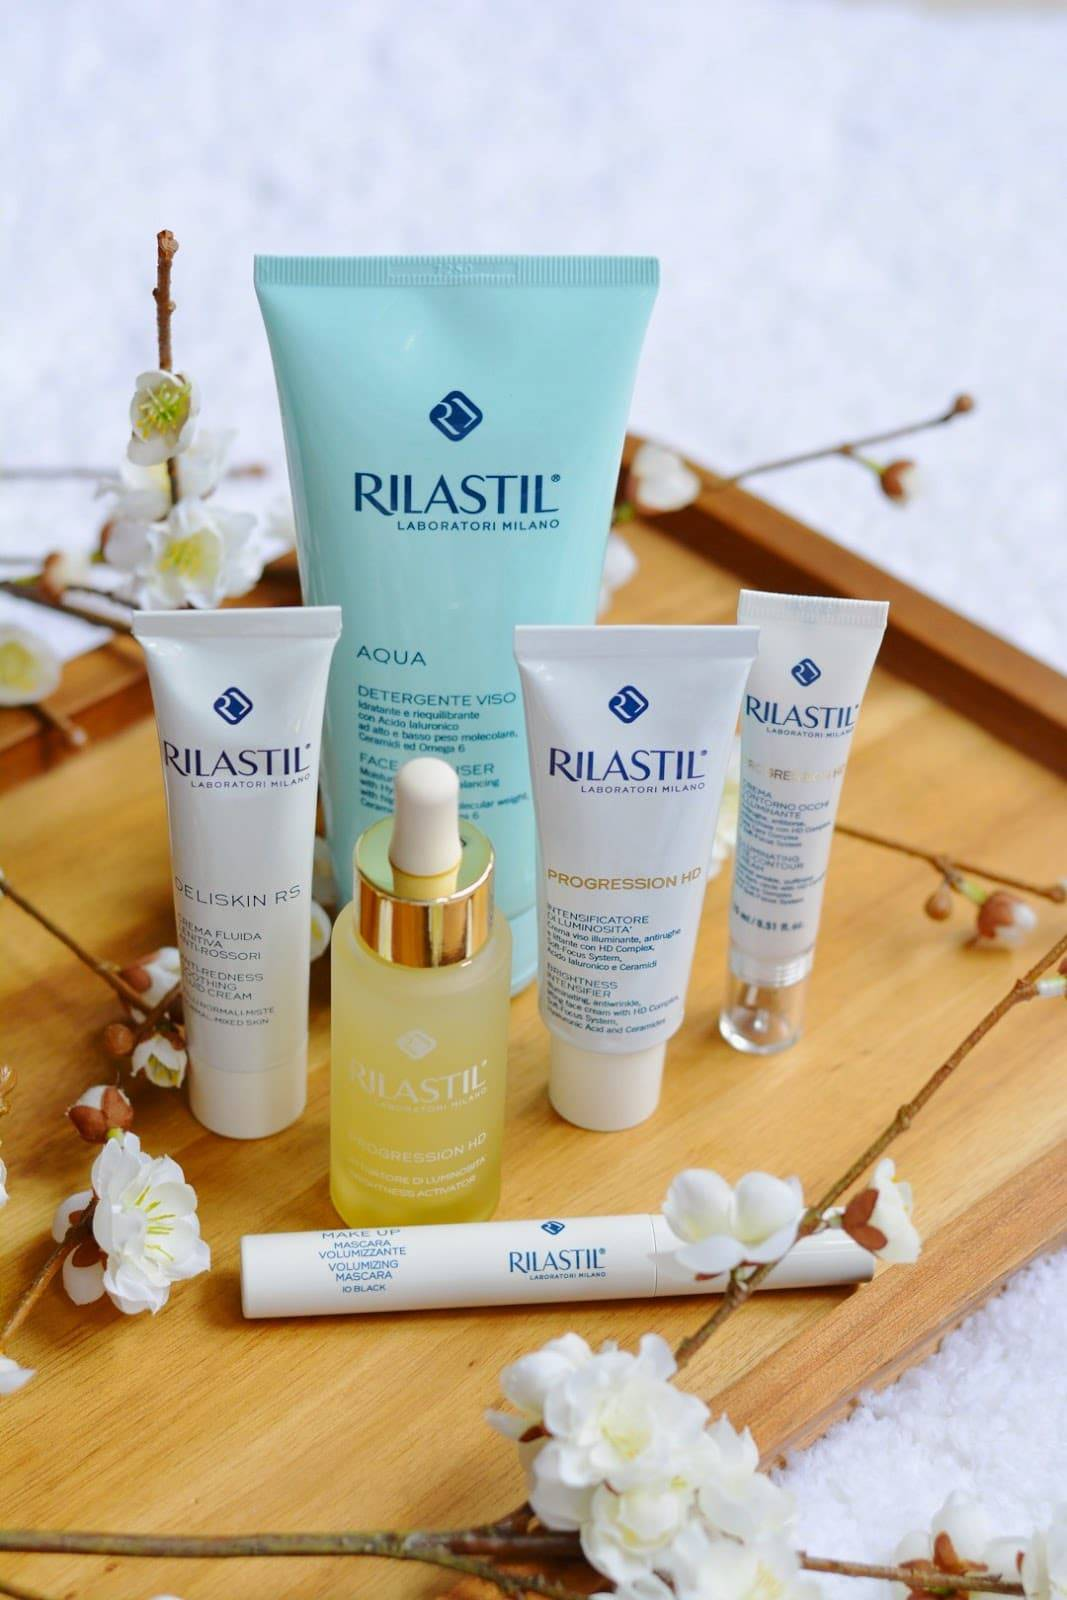 Looking to try Rilastil? Today, we're sharing the products we've been using and our expereince so far. We hope you enjoy this Rilastil review!